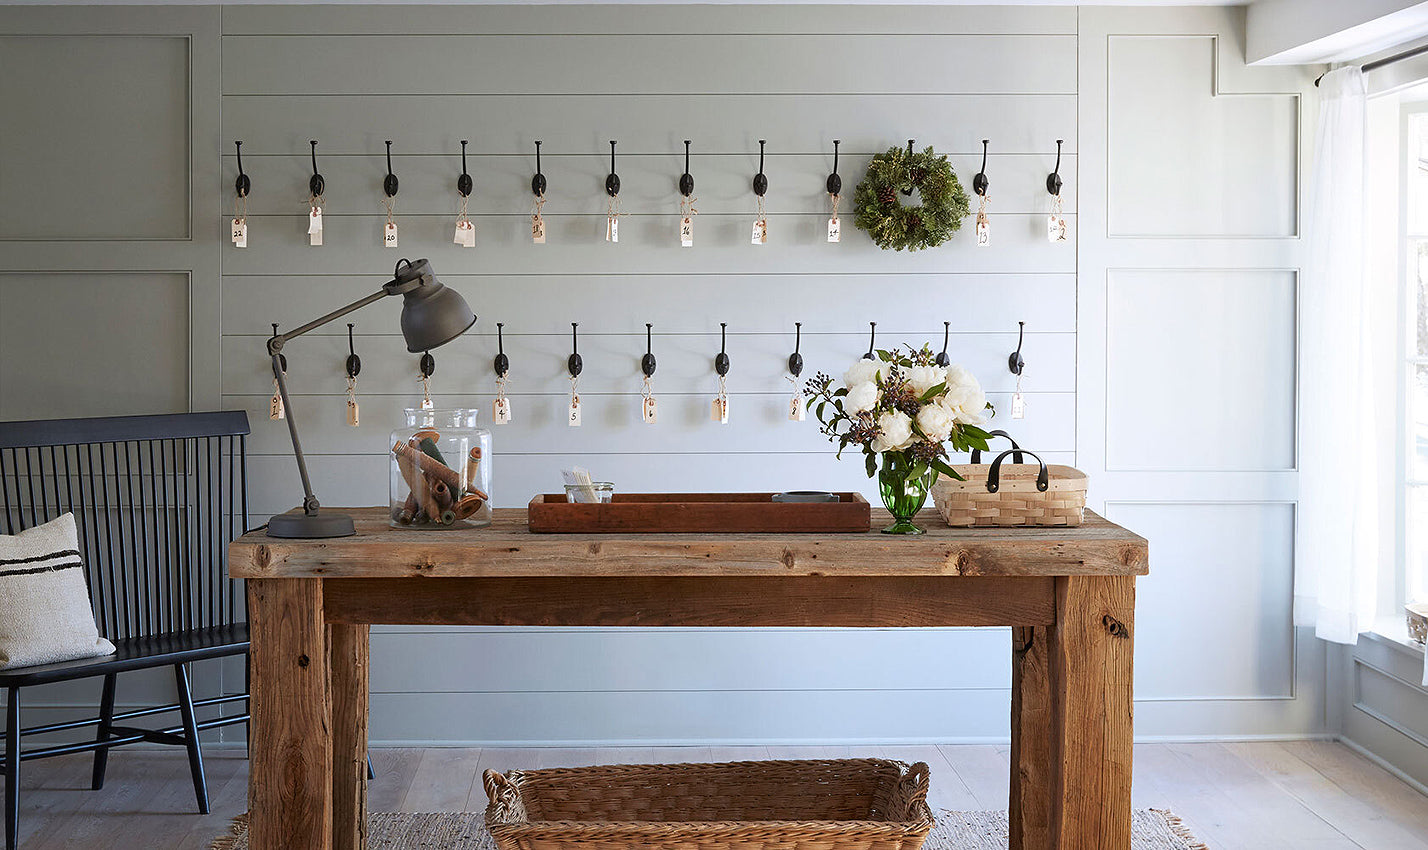 Graybarns boutique hotel/Photographer: JMarili Forastieri/A soothing, spalike space at GrayBarns epitomizes the neutral theme.